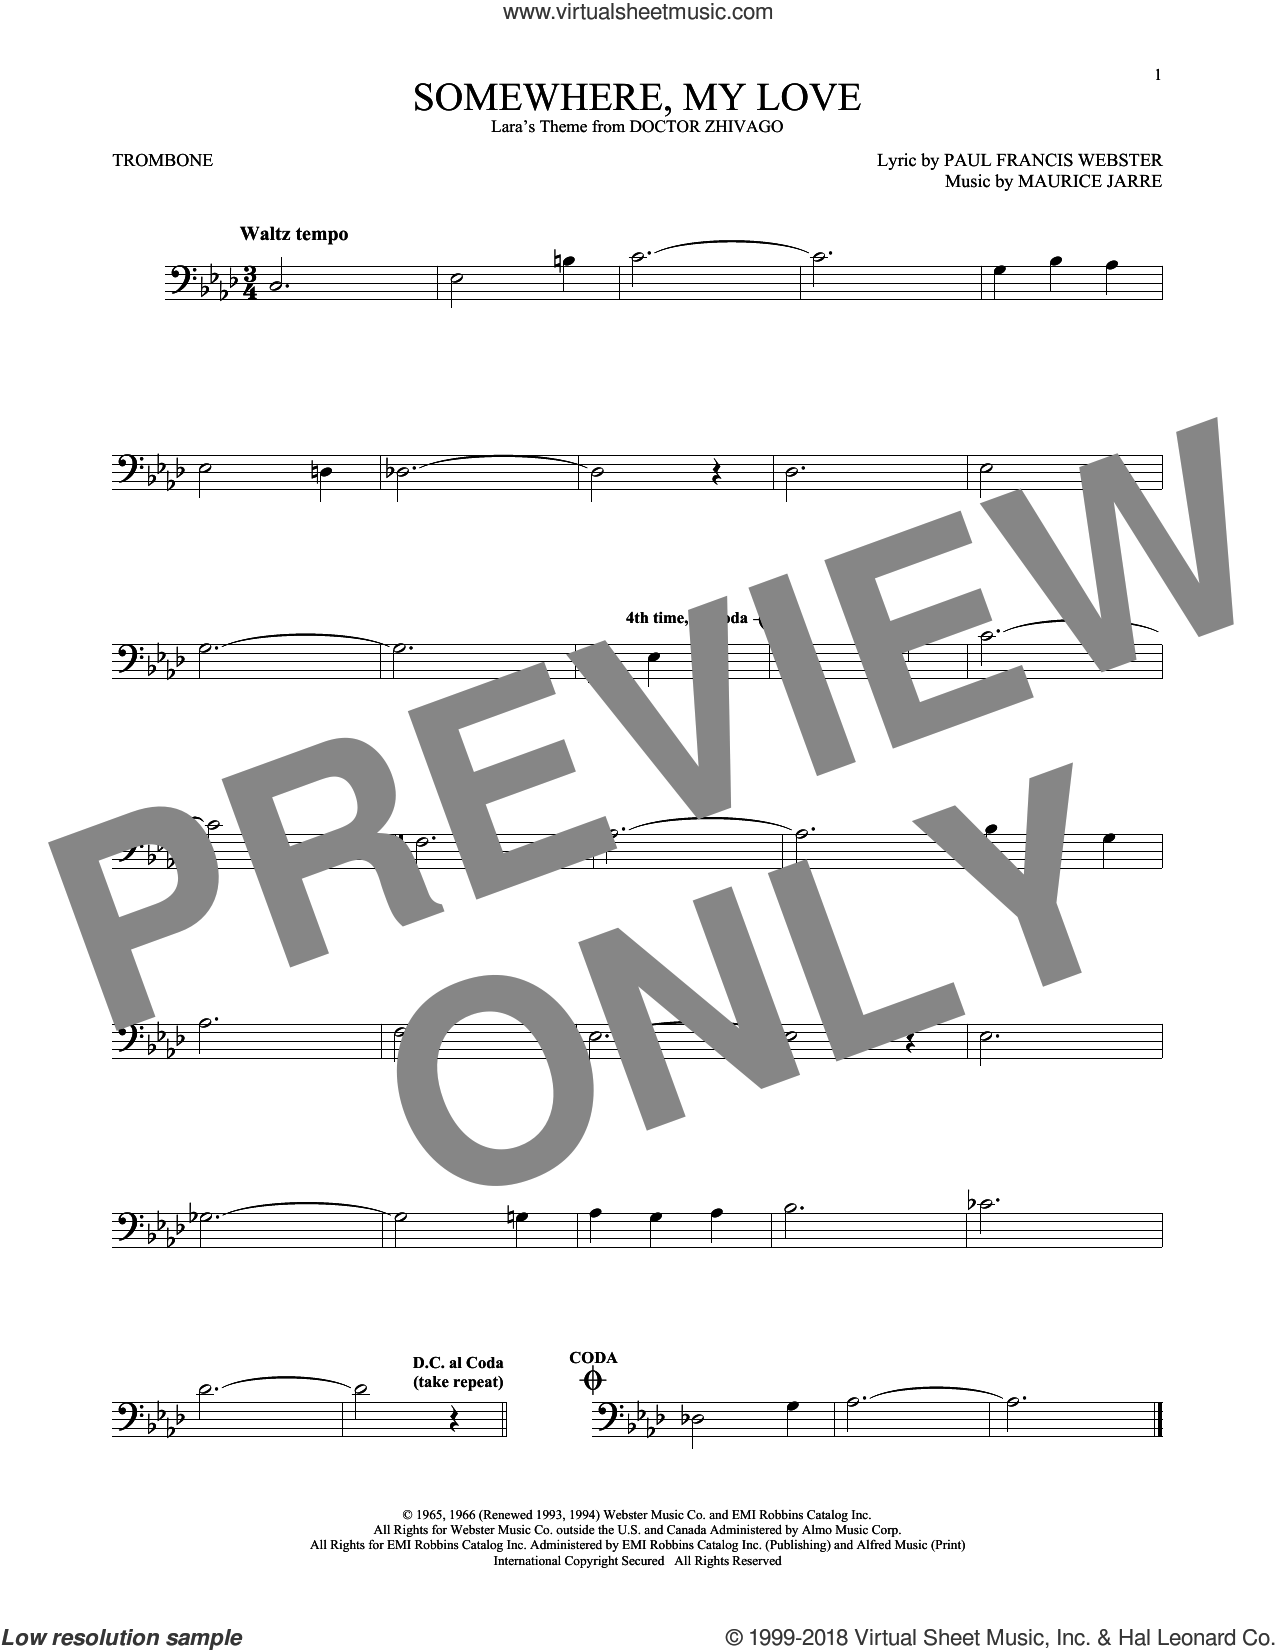 Somewhere, My Love sheet music for trombone solo by Paul Francis Webster and Maurice Jarre, intermediate skill level